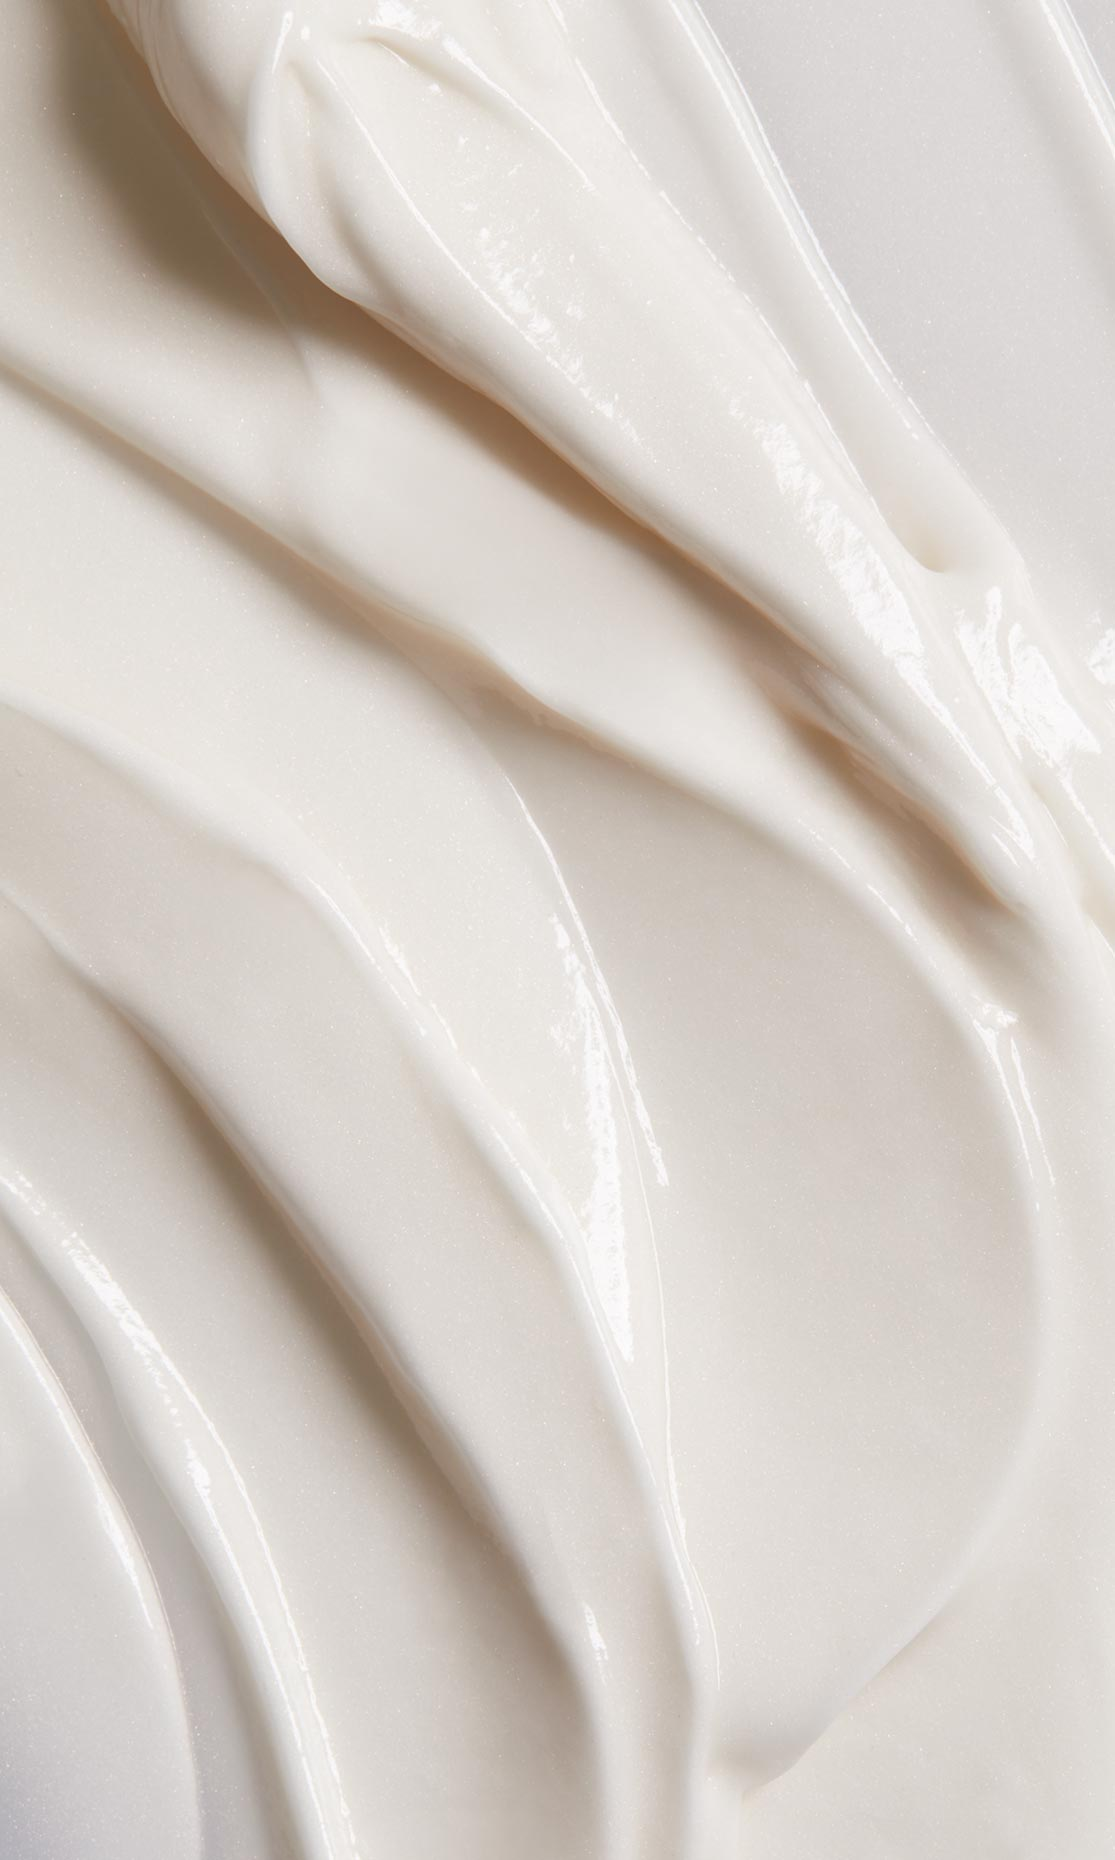 Shimmer cream by Teri Lyn Fisher, cosmetic photographer